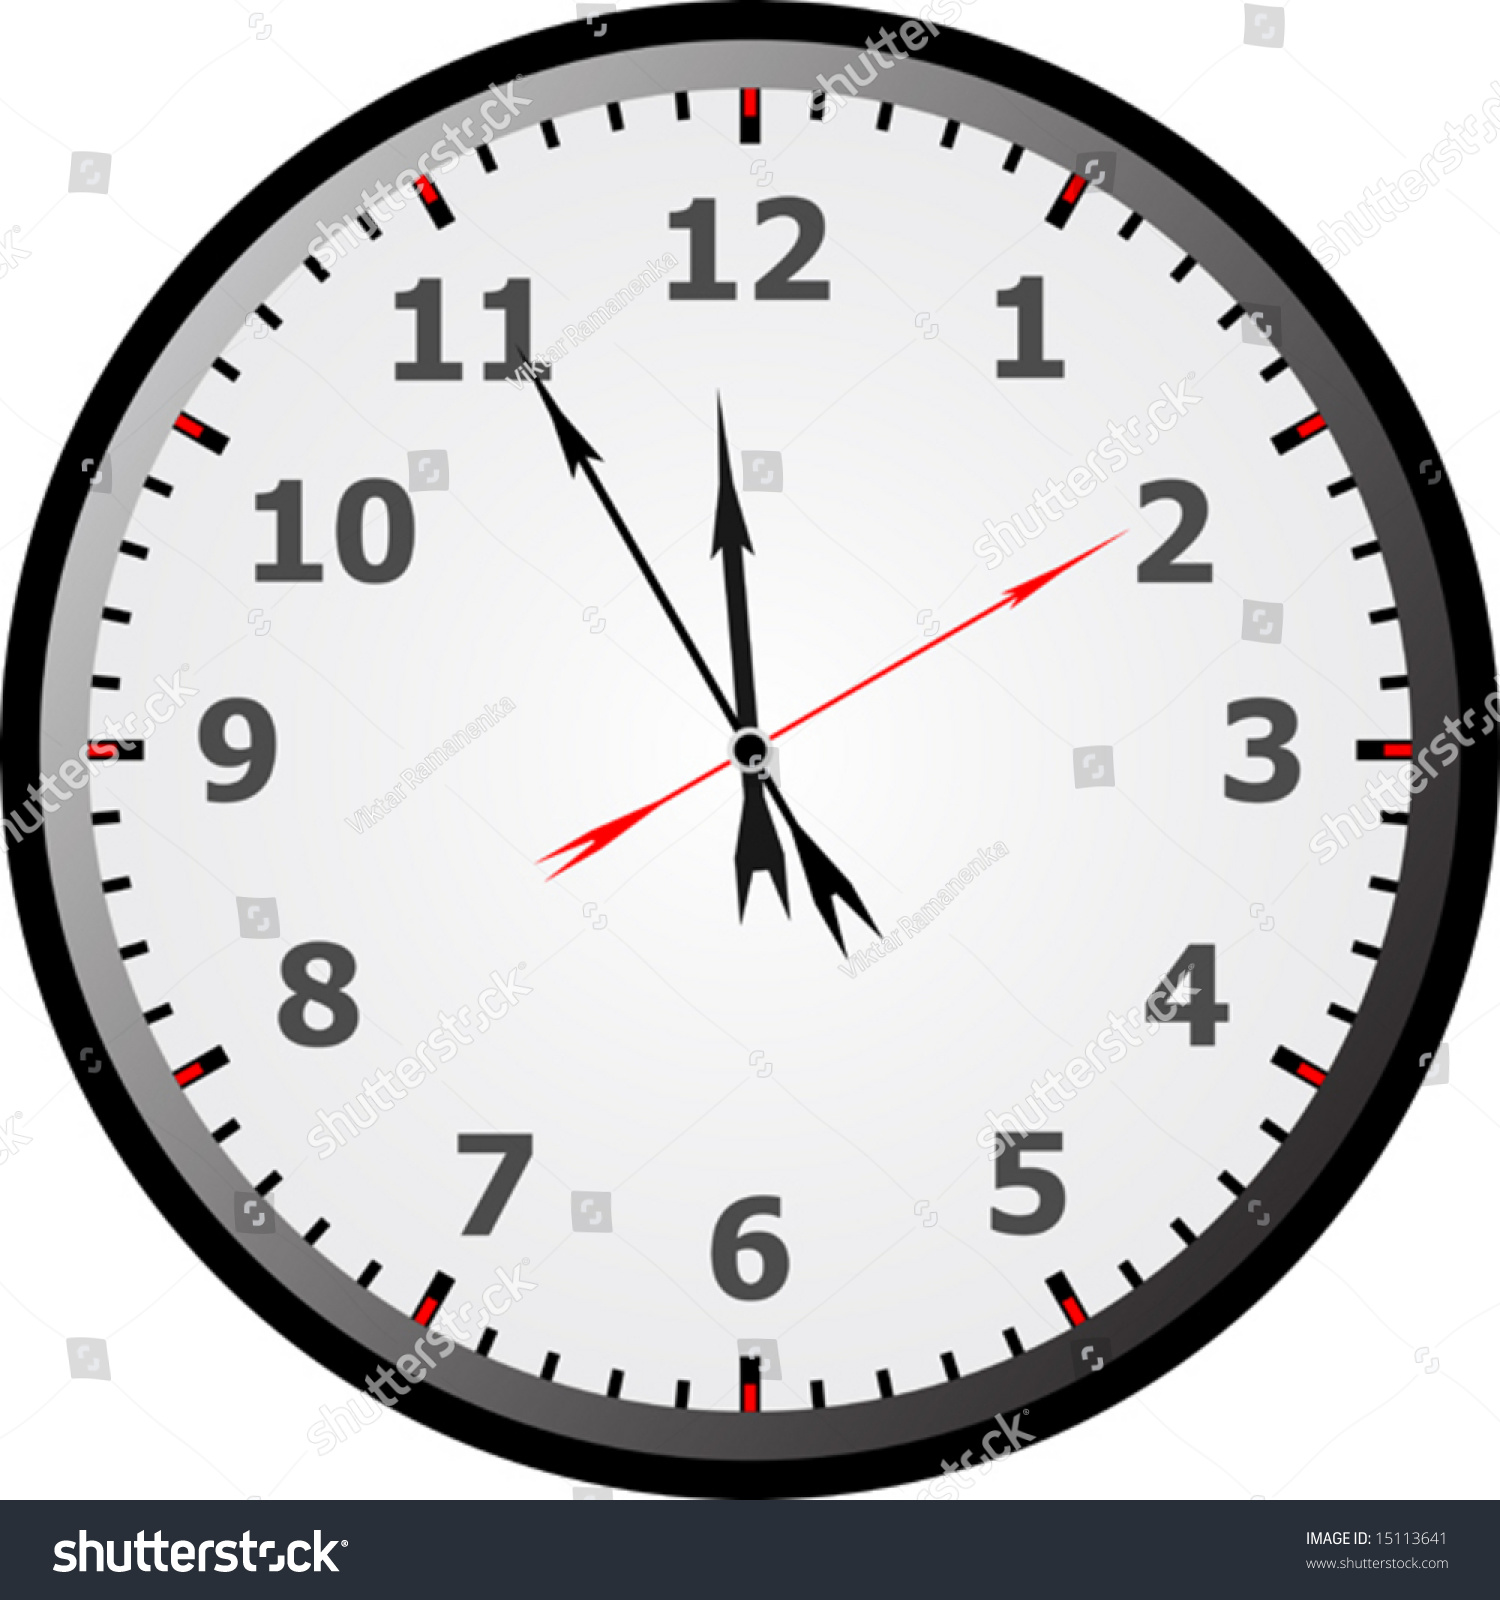 worksheet Printable Clock Face With Minutes clock face with minutes tape measurement test reading about five stock vector 15113641 five